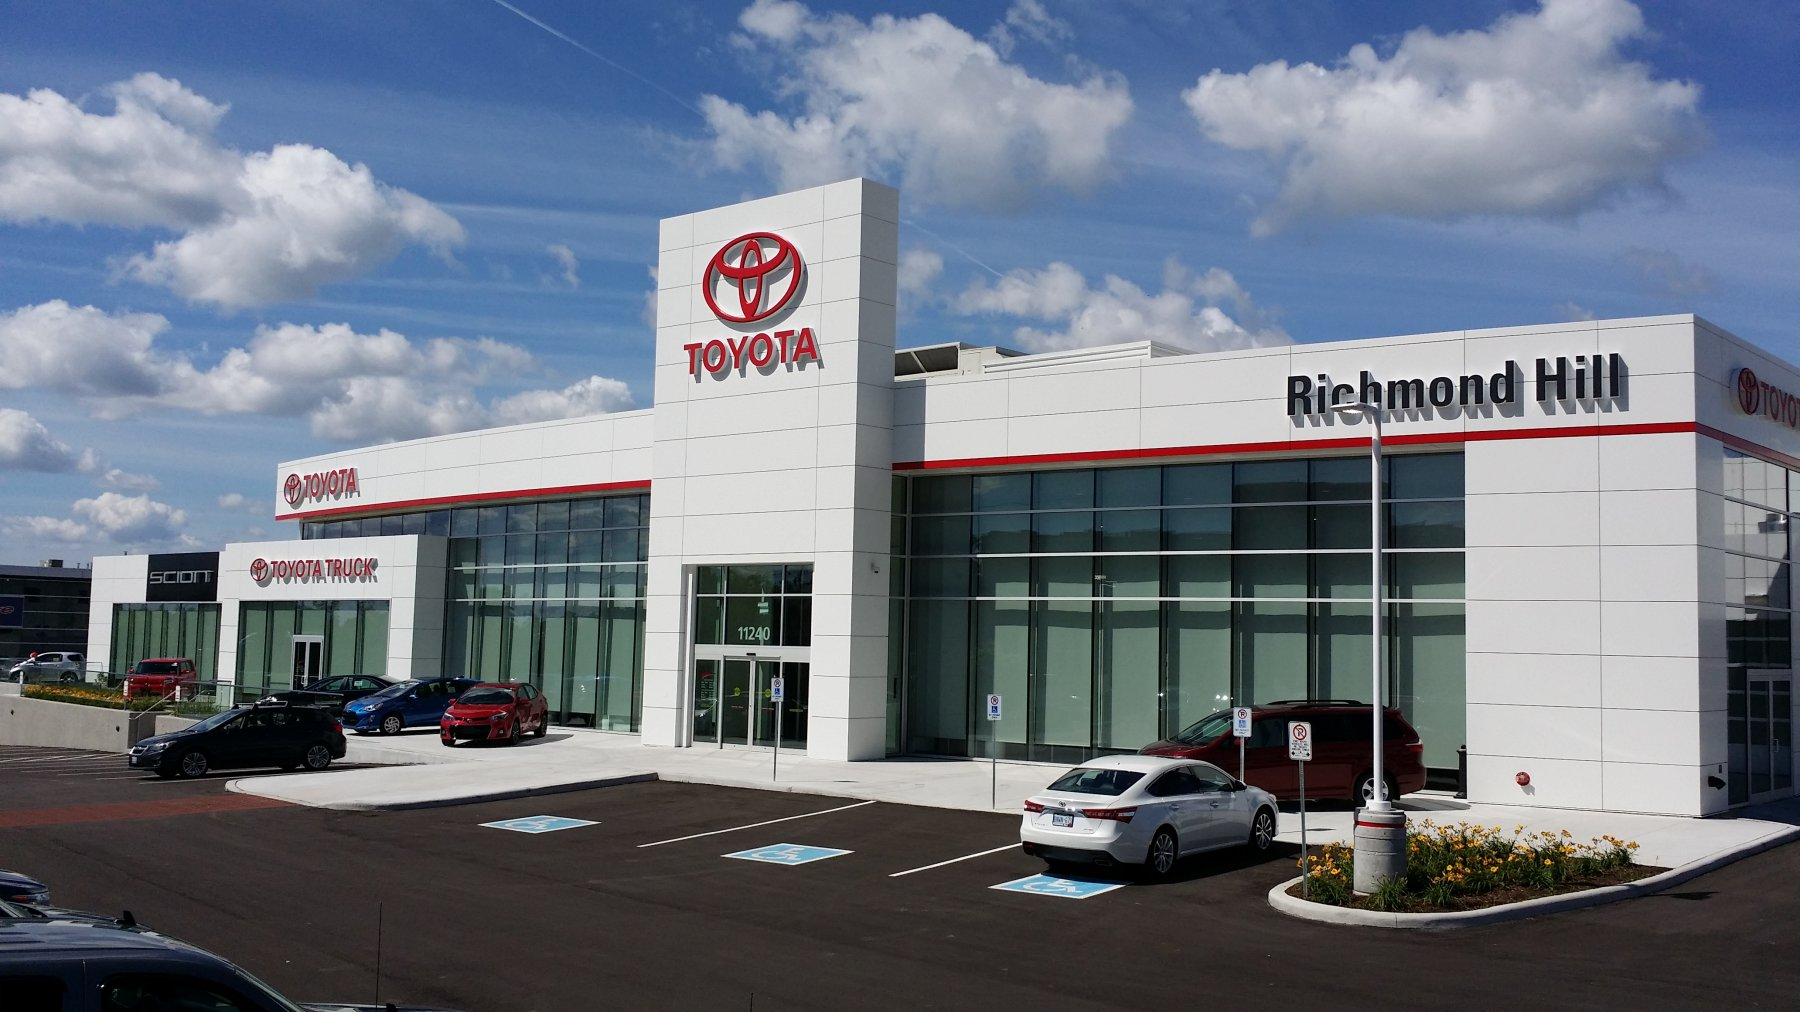 Richmond Hill Toyota | 👍 - 3 2/5 - 29 Reviews | 11240 Yonge St